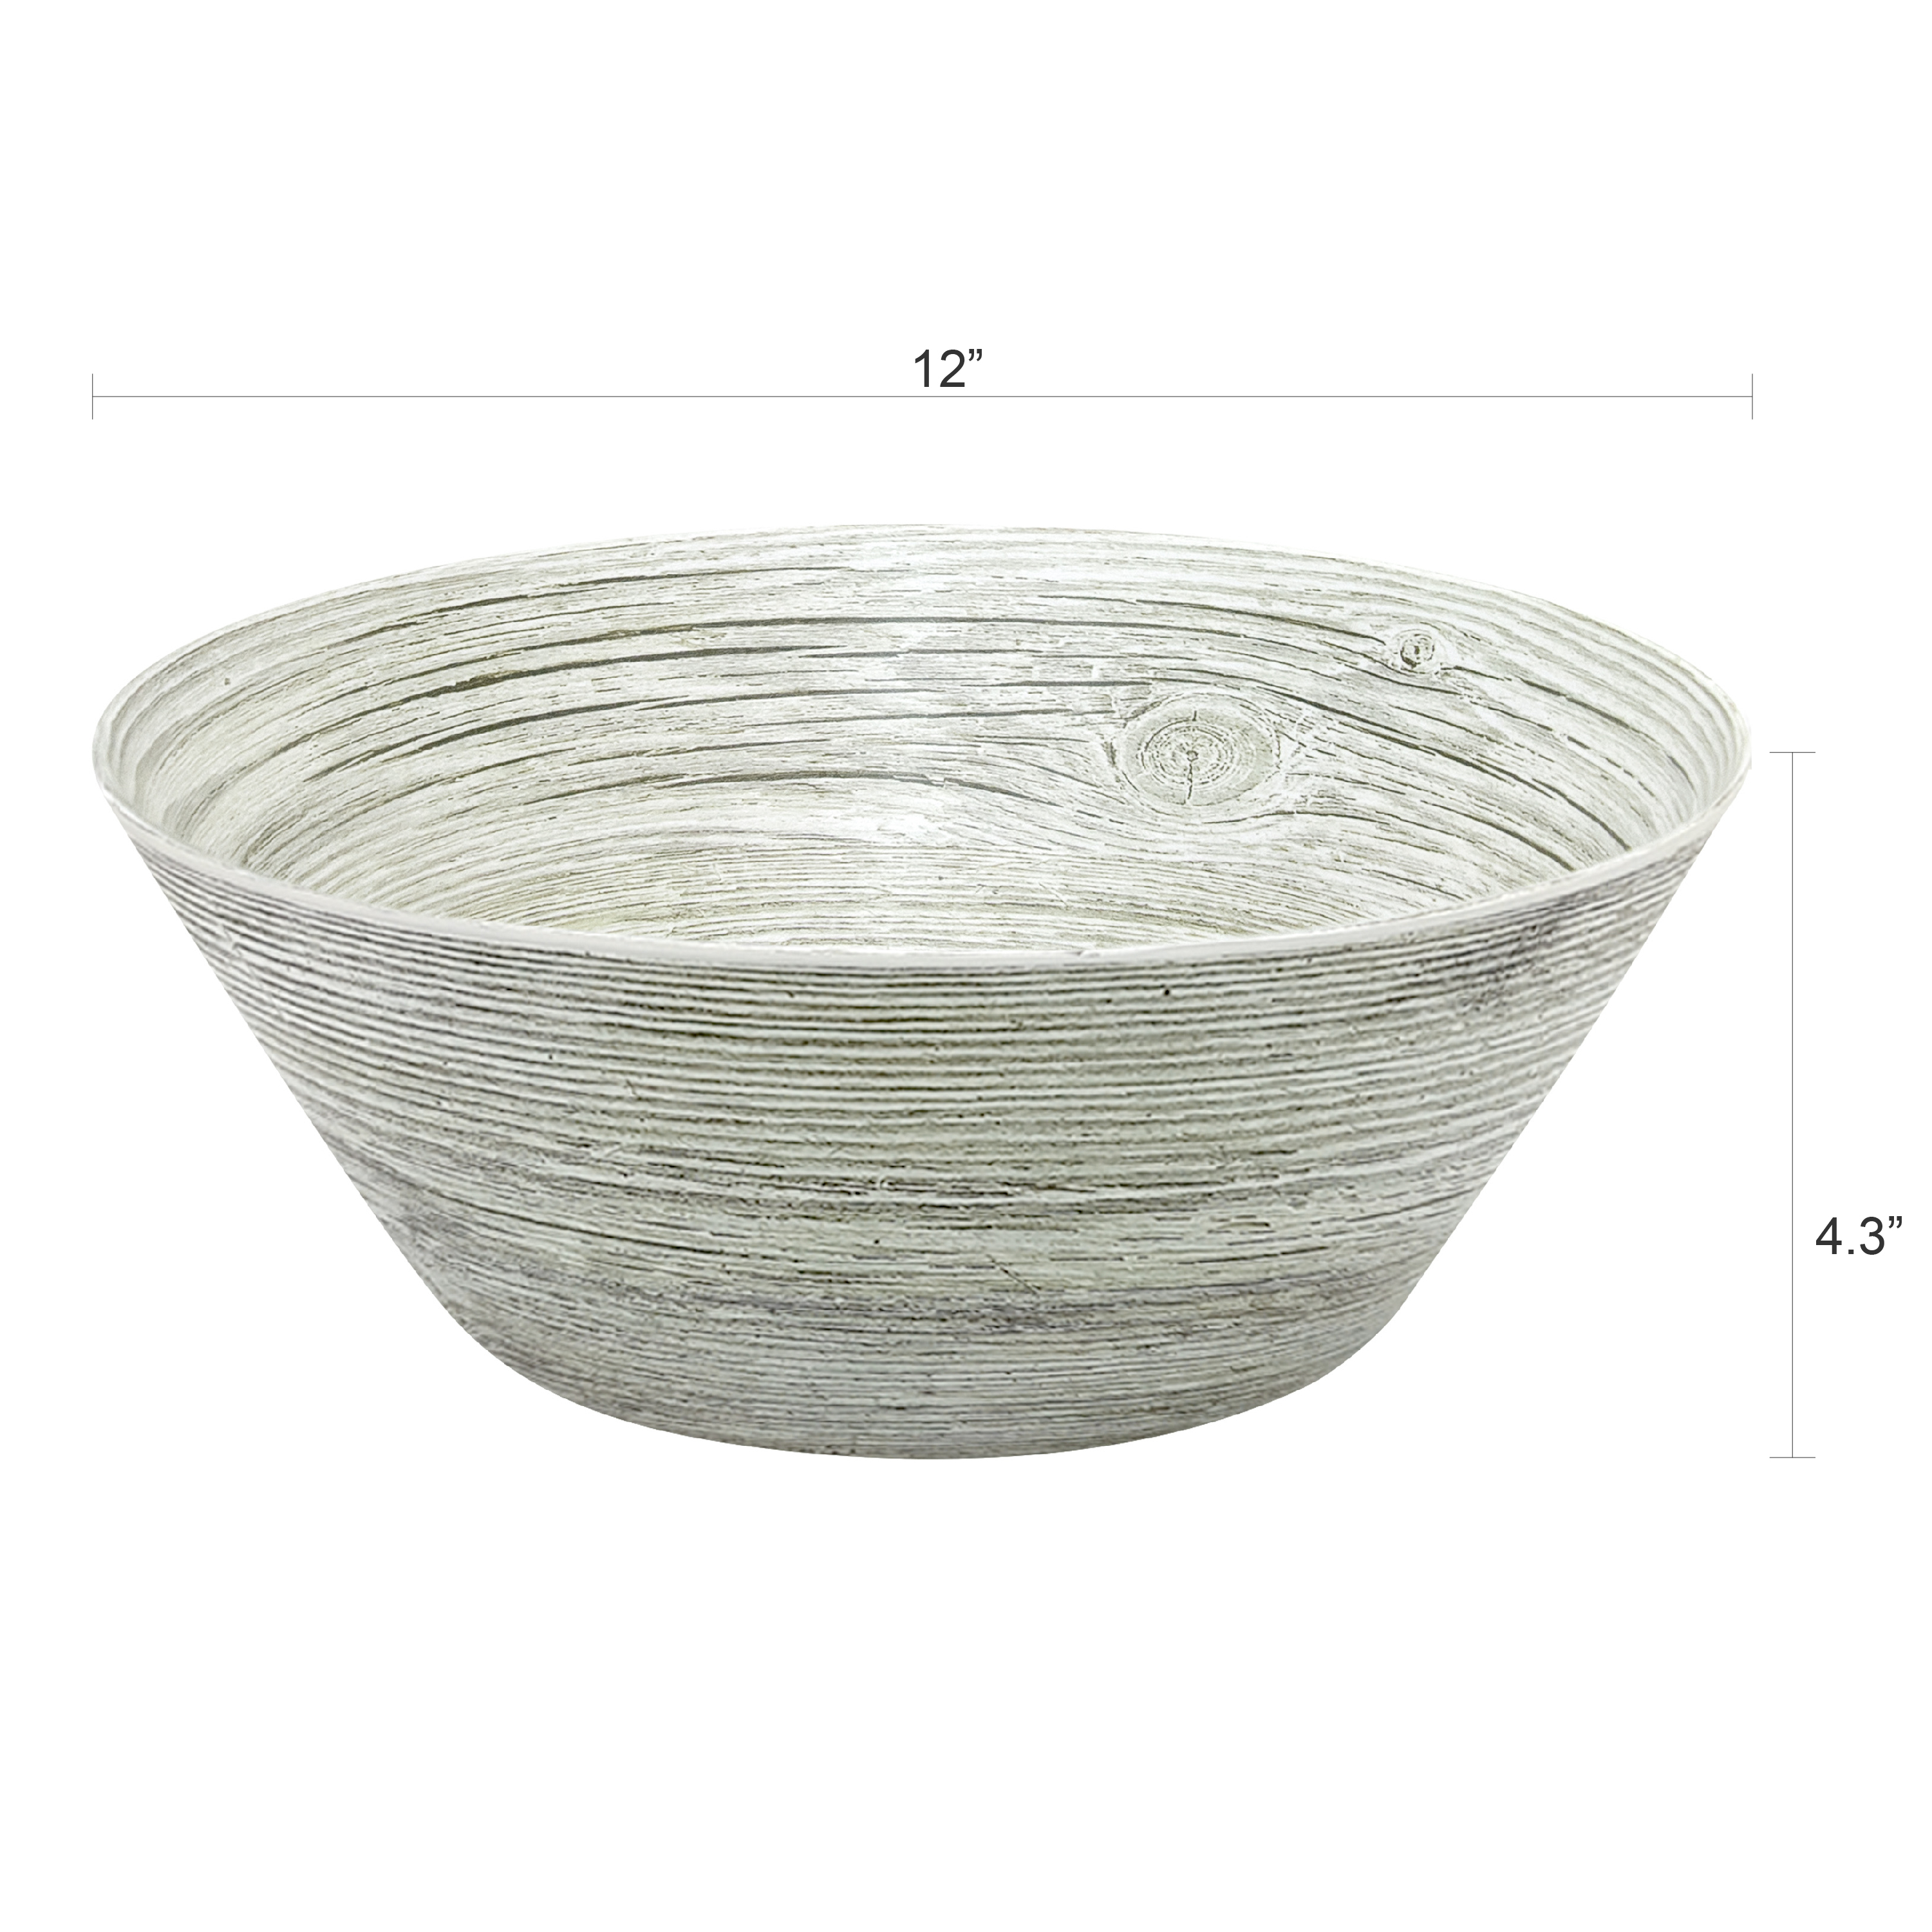 Zak Style Serving and Dip Bowls, Assorted Colors, 4-piece set slideshow image 4